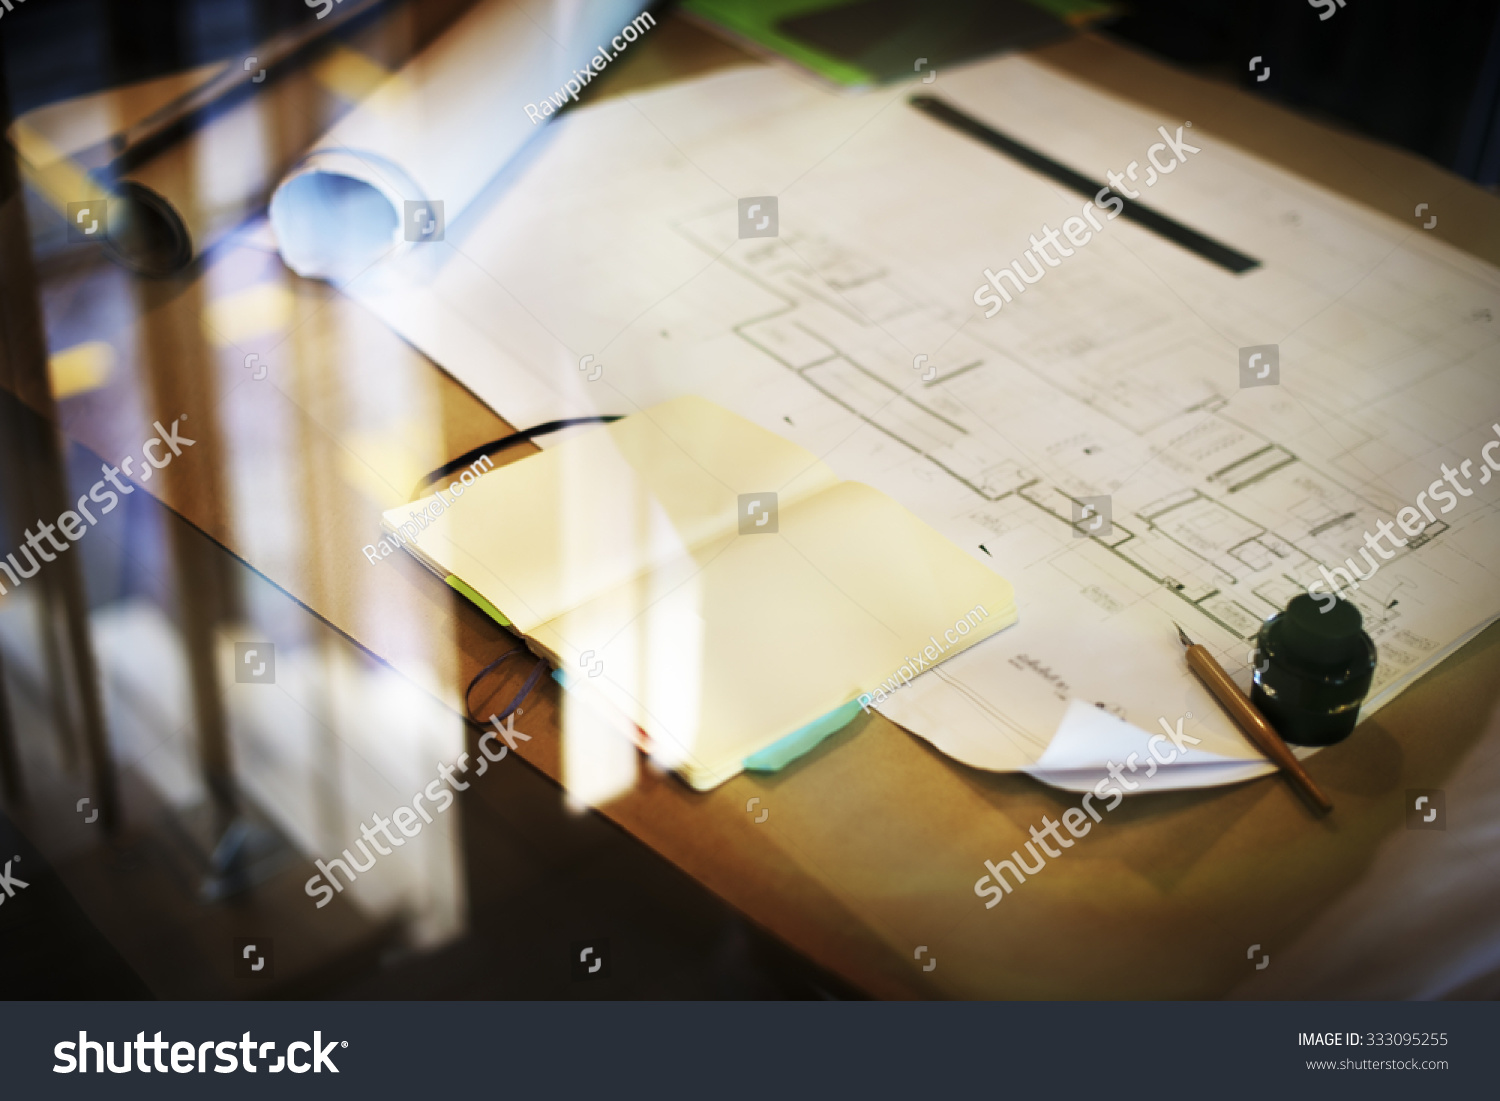 Construction blueprint project working planning concept stock construction blueprint project working planning concept malvernweather Choice Image